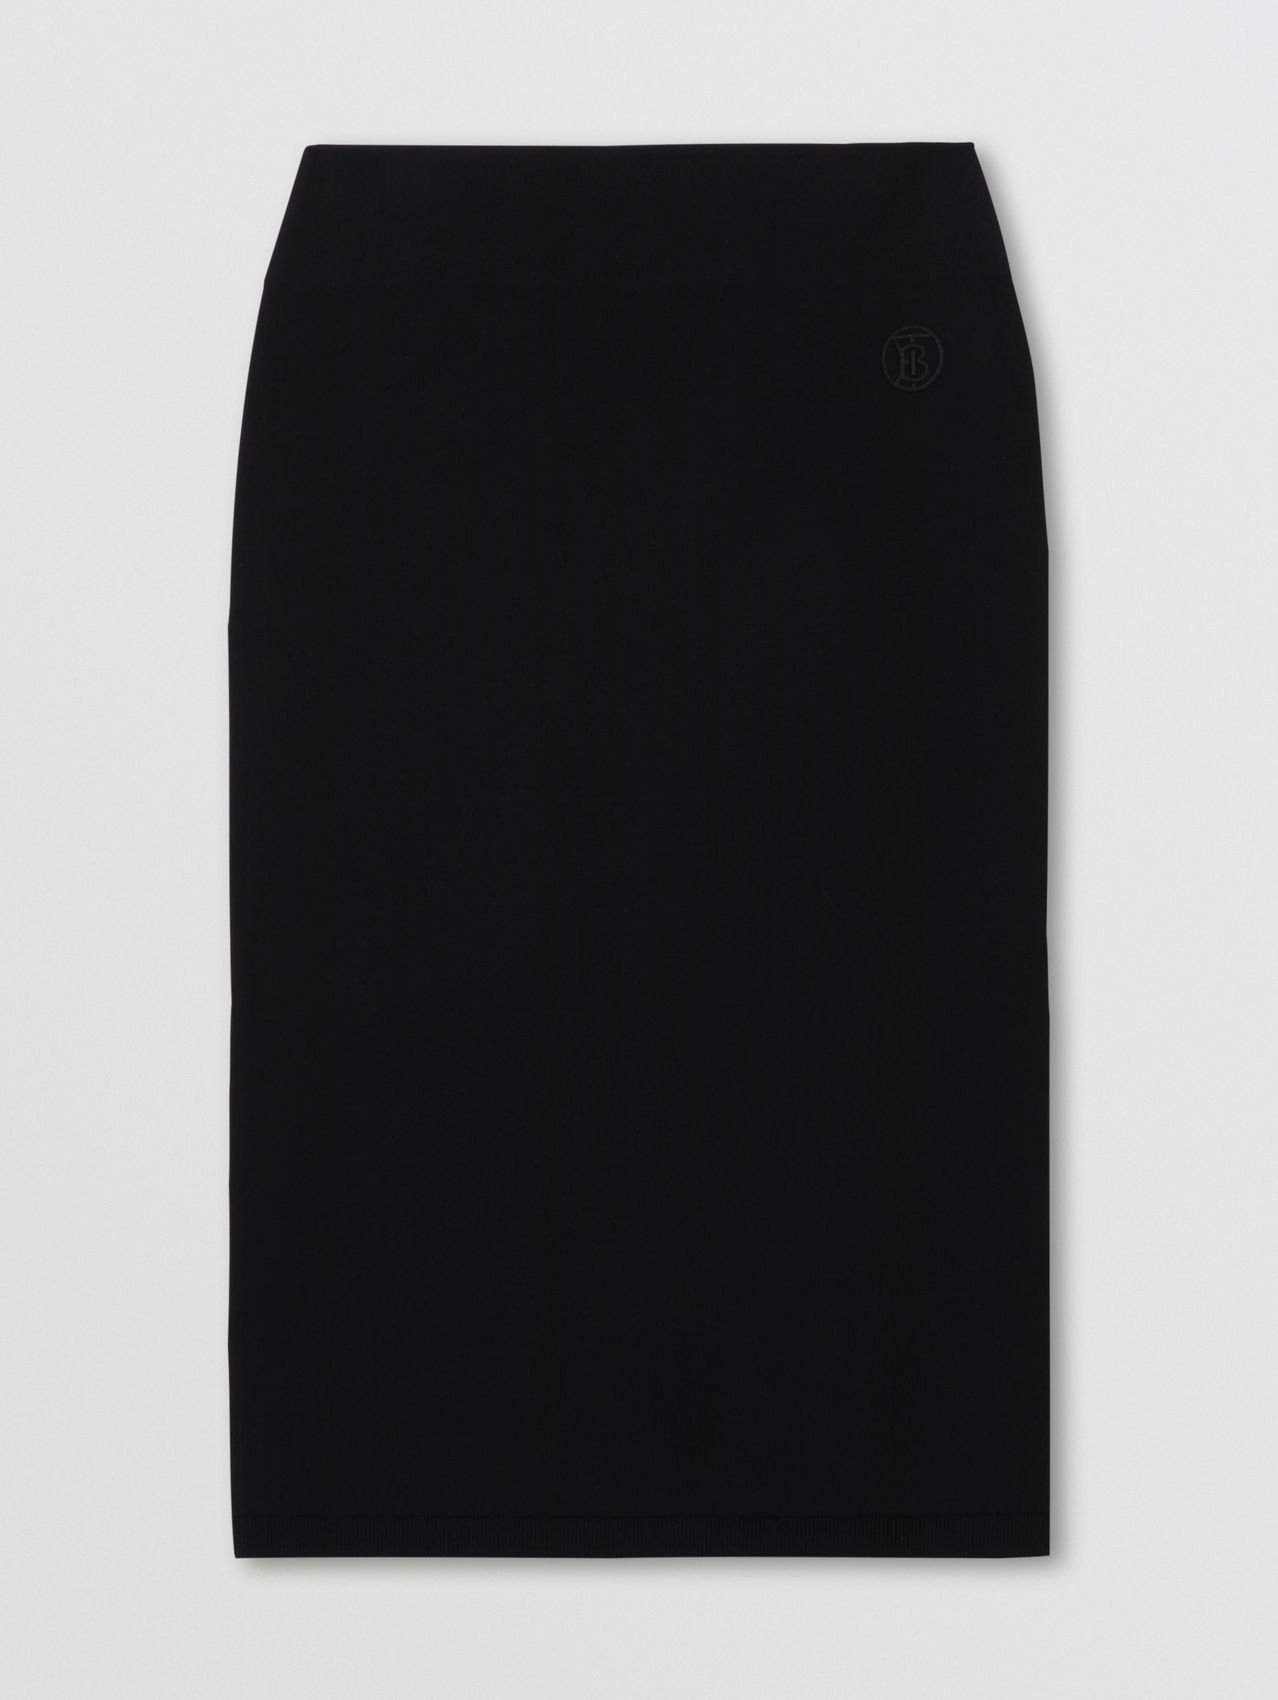 Monogram Motif Stretch Jersey Pencil Skirt in Black